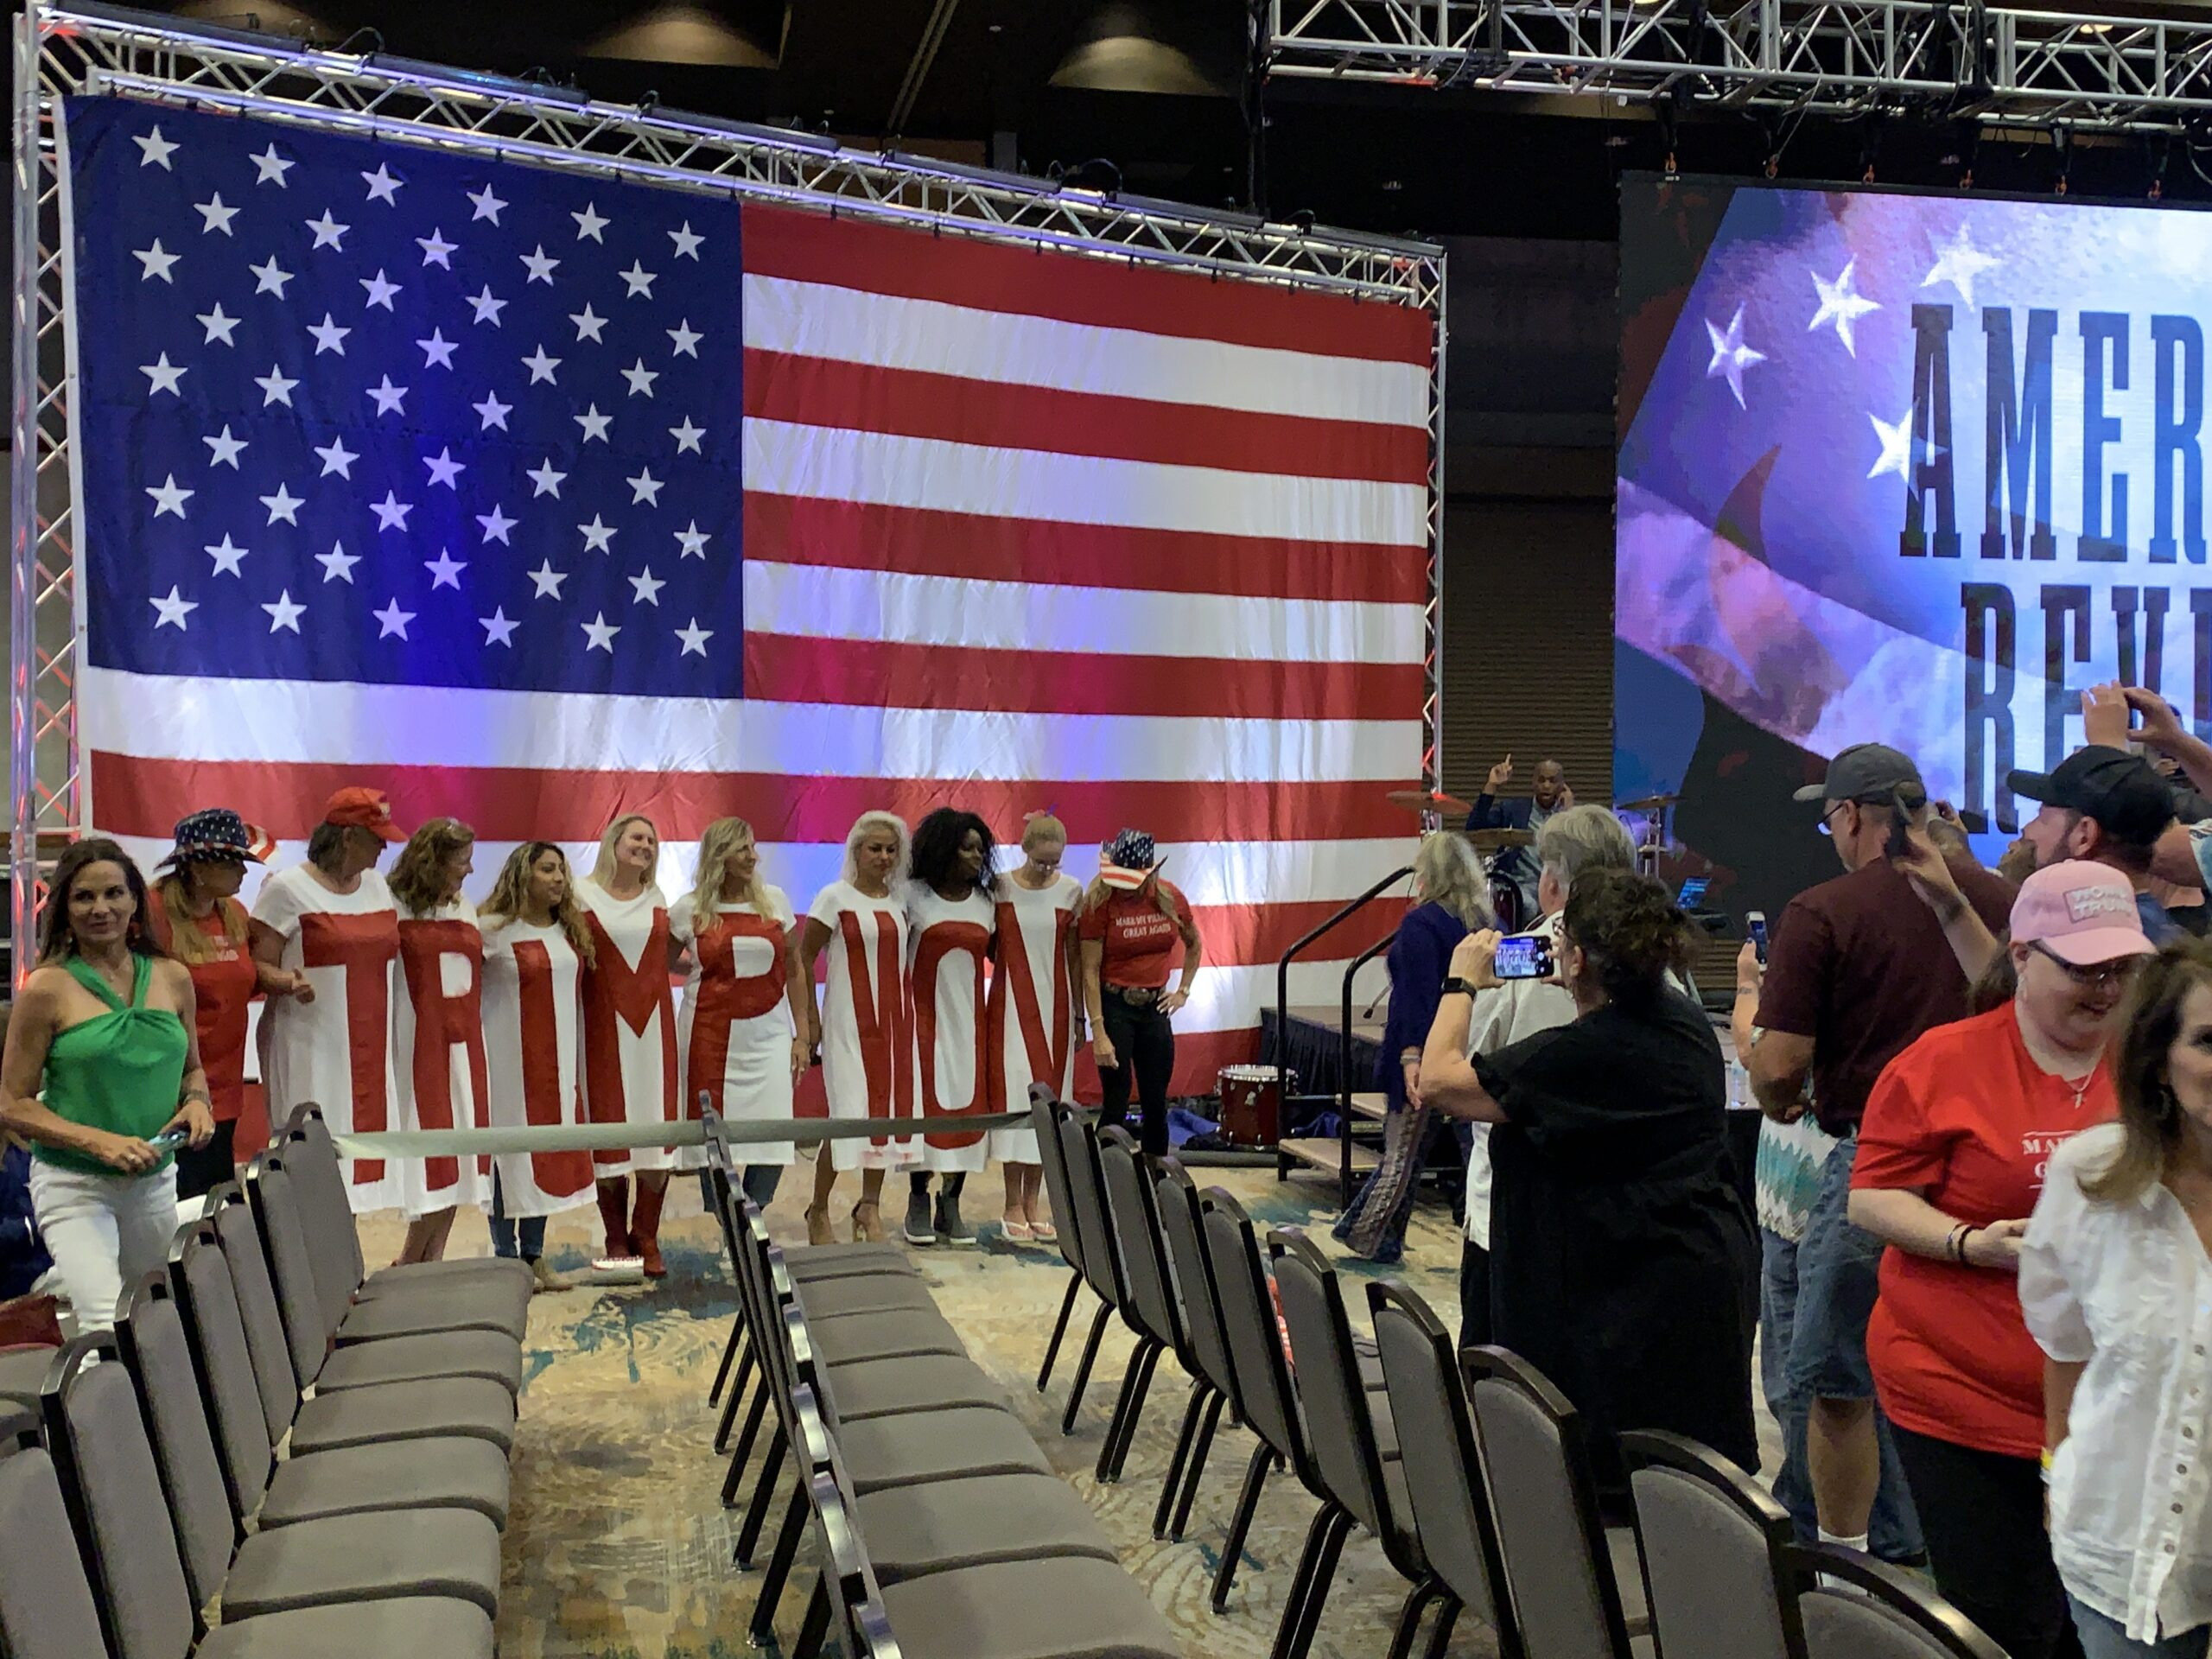 """A group of women is shirts spelling out """"Trump Won"""" pose for photos at the America's Revival event in Frisco, Texas. RNS photo by Bob Smietana"""